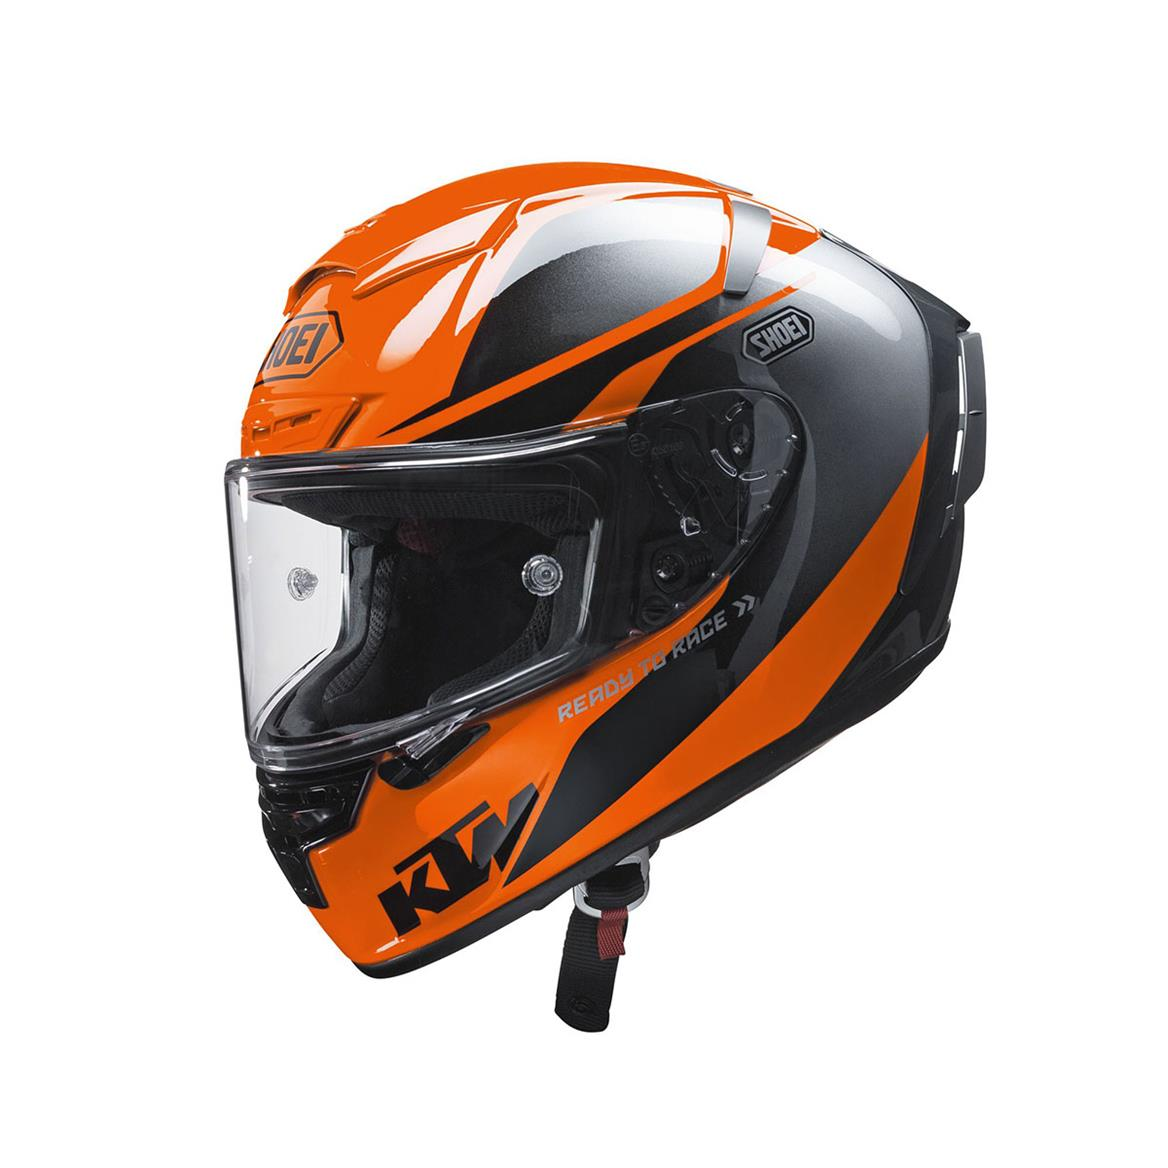 The new Shoei X-Spirit III